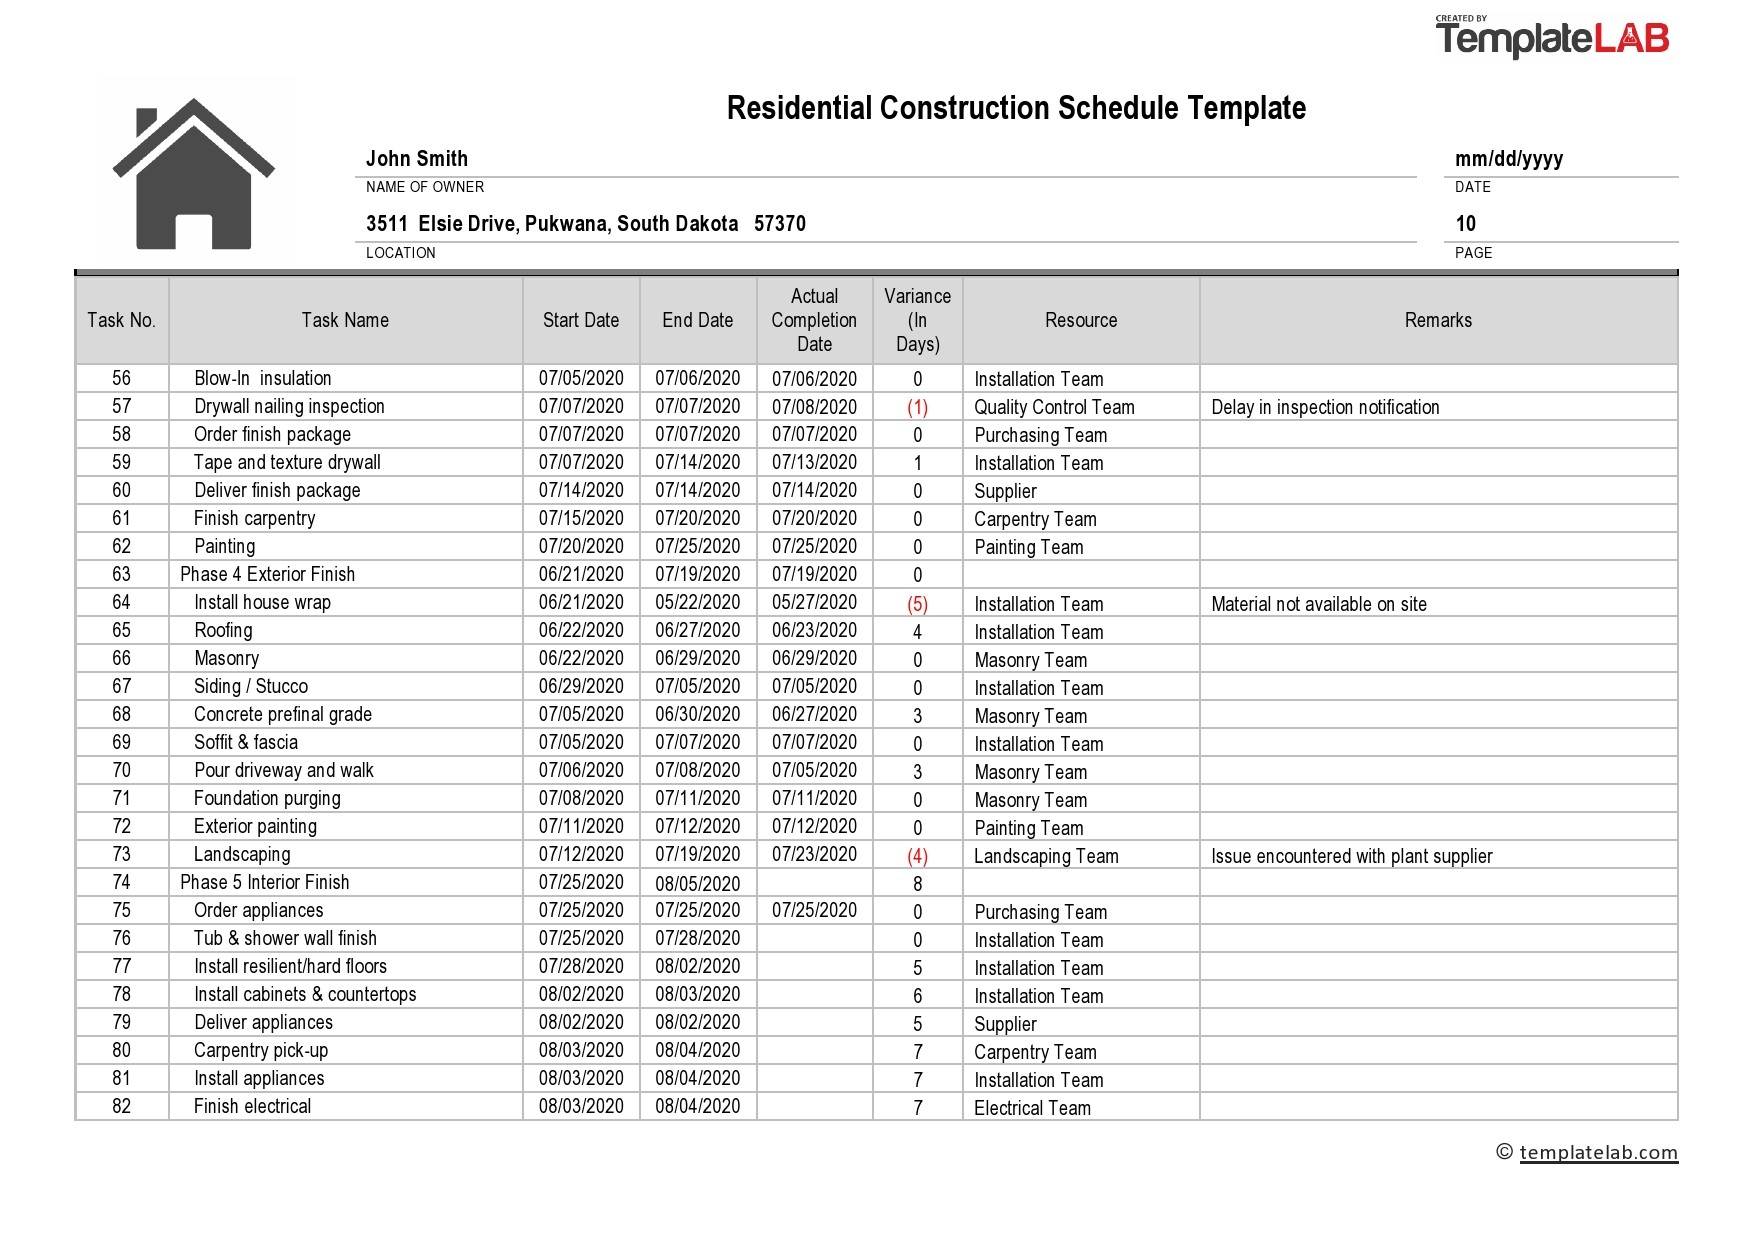 Free Residential Construction Schedule - TemplateLab